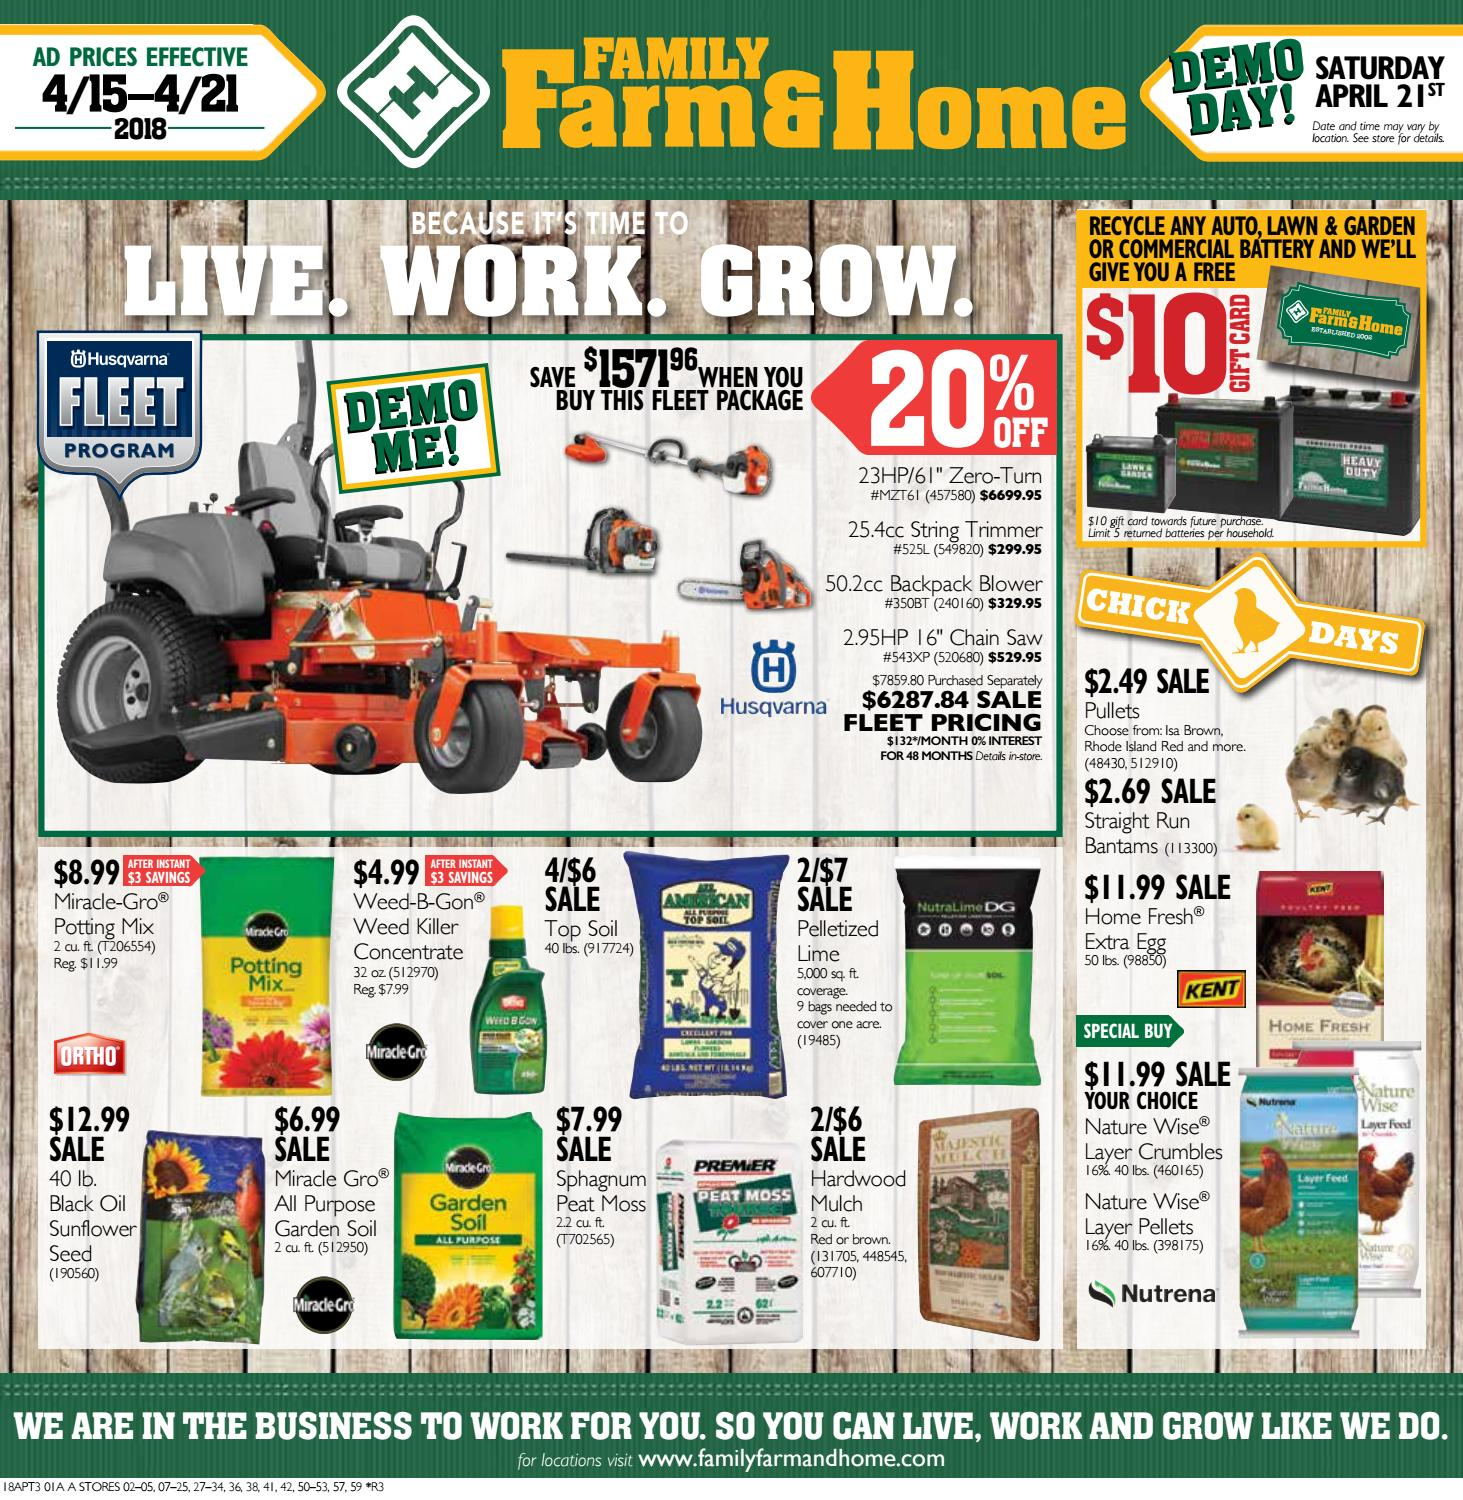 Family Farm & Home APT3 Ad (Effective April 15-21, 2018) by